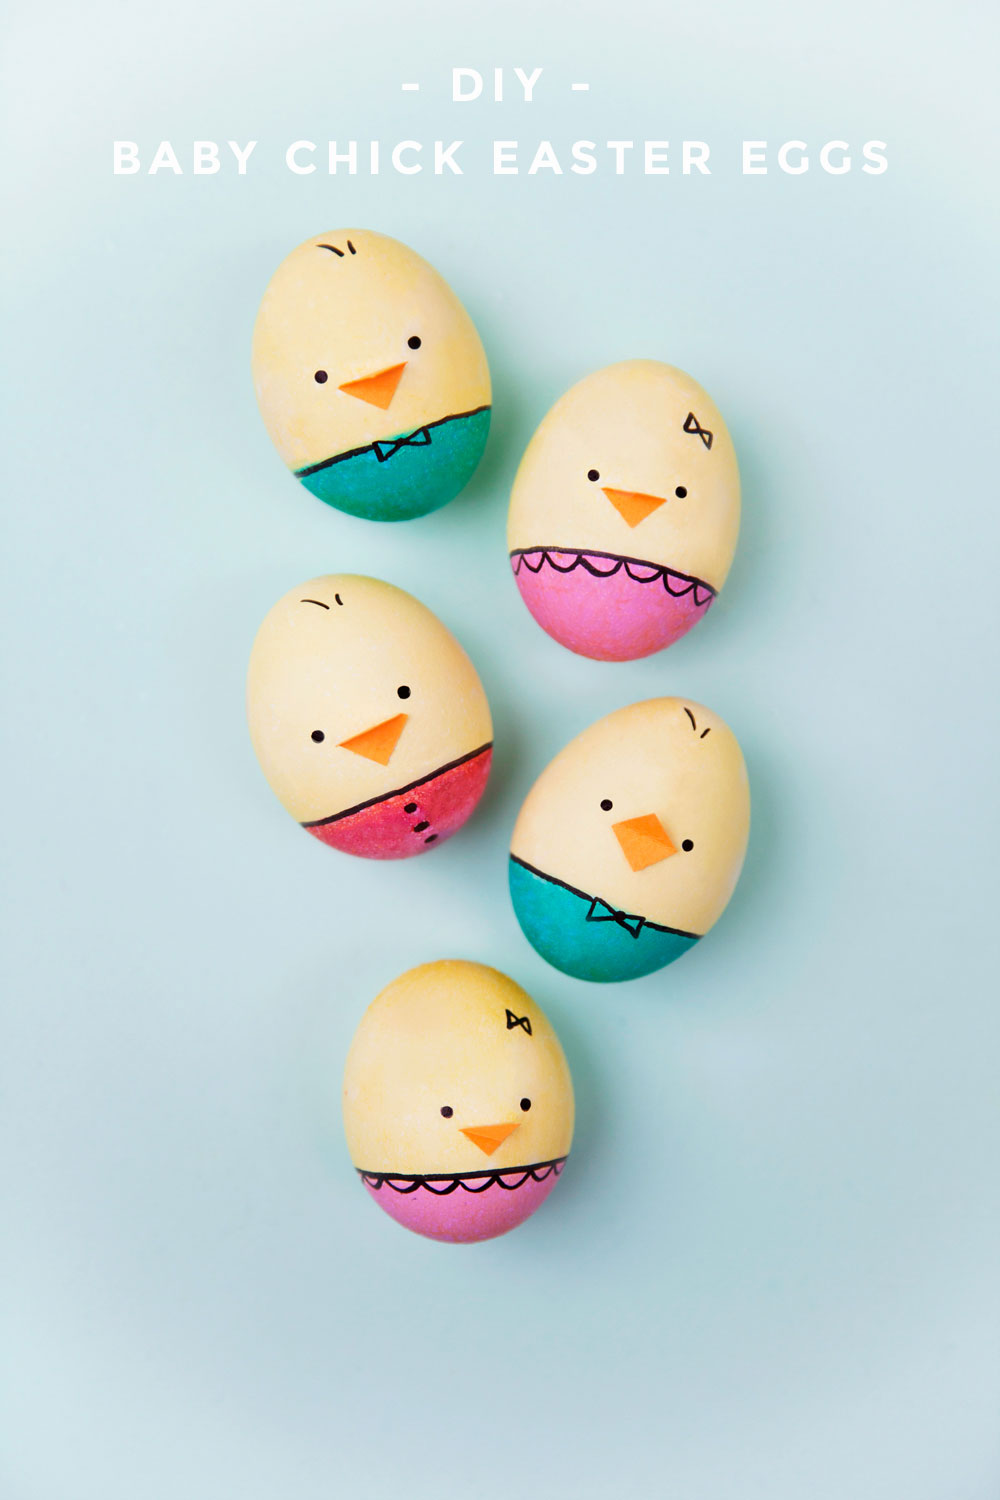 Make these DIY baby chick Easter eggs this year, your kids will not be disappointed! So easy to make and so dang adorable!